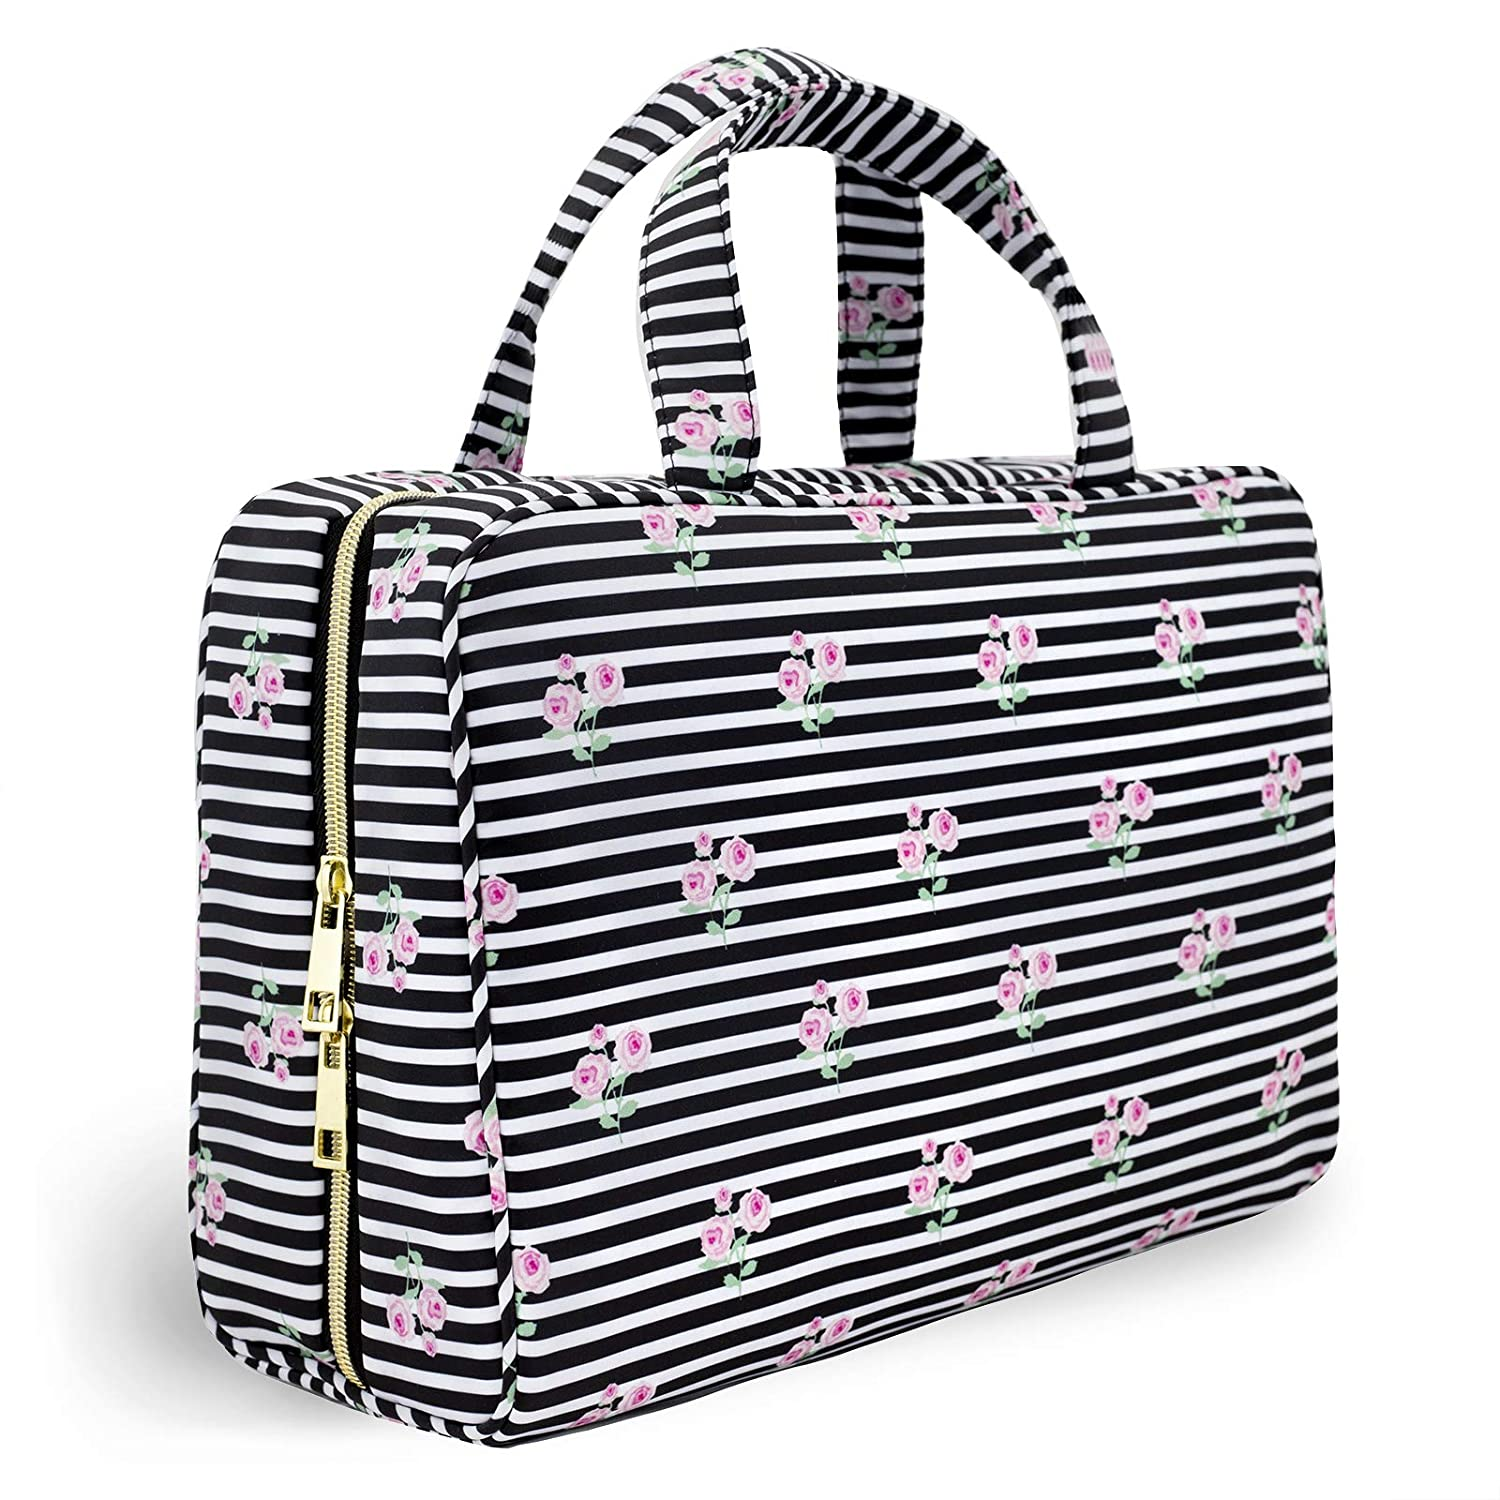 Once Upon A Rose Makeup Bag for Women and Girls, Large Cosmetic Bag with Zippered, Transparent Pockets and Handles, Foldable Makeup Bag for Home and Travel - Roses & Stripes Print